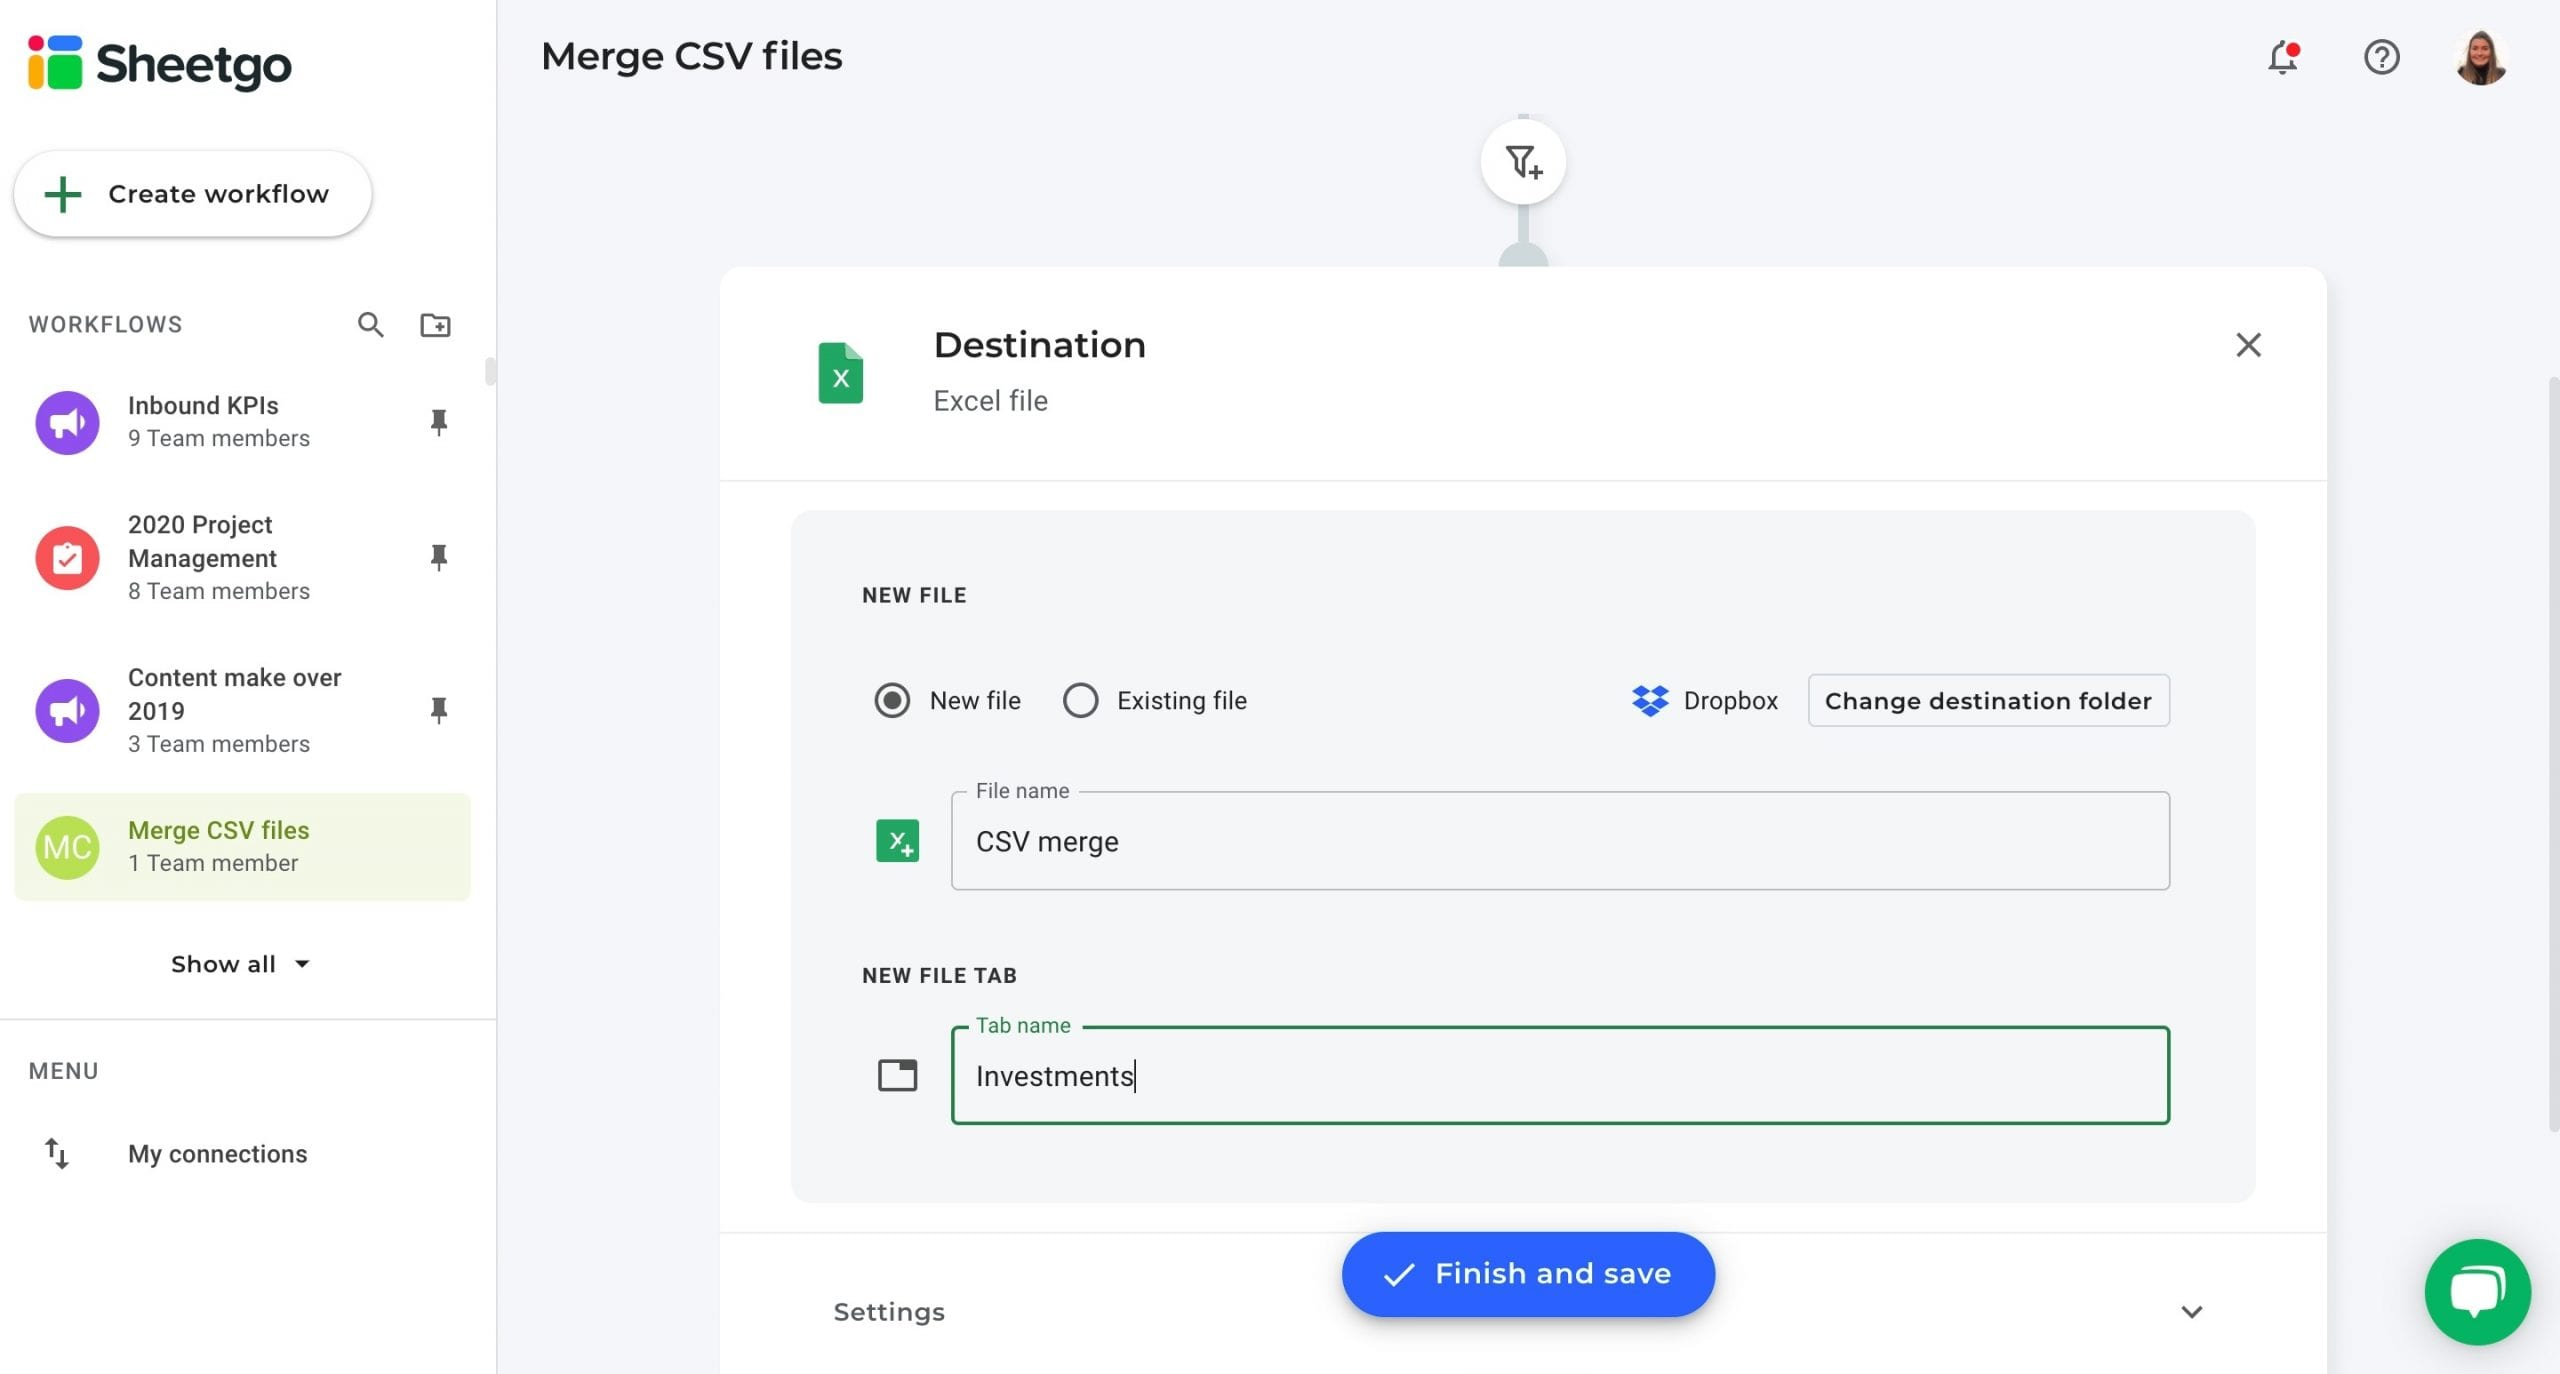 Merge CSV files data destination